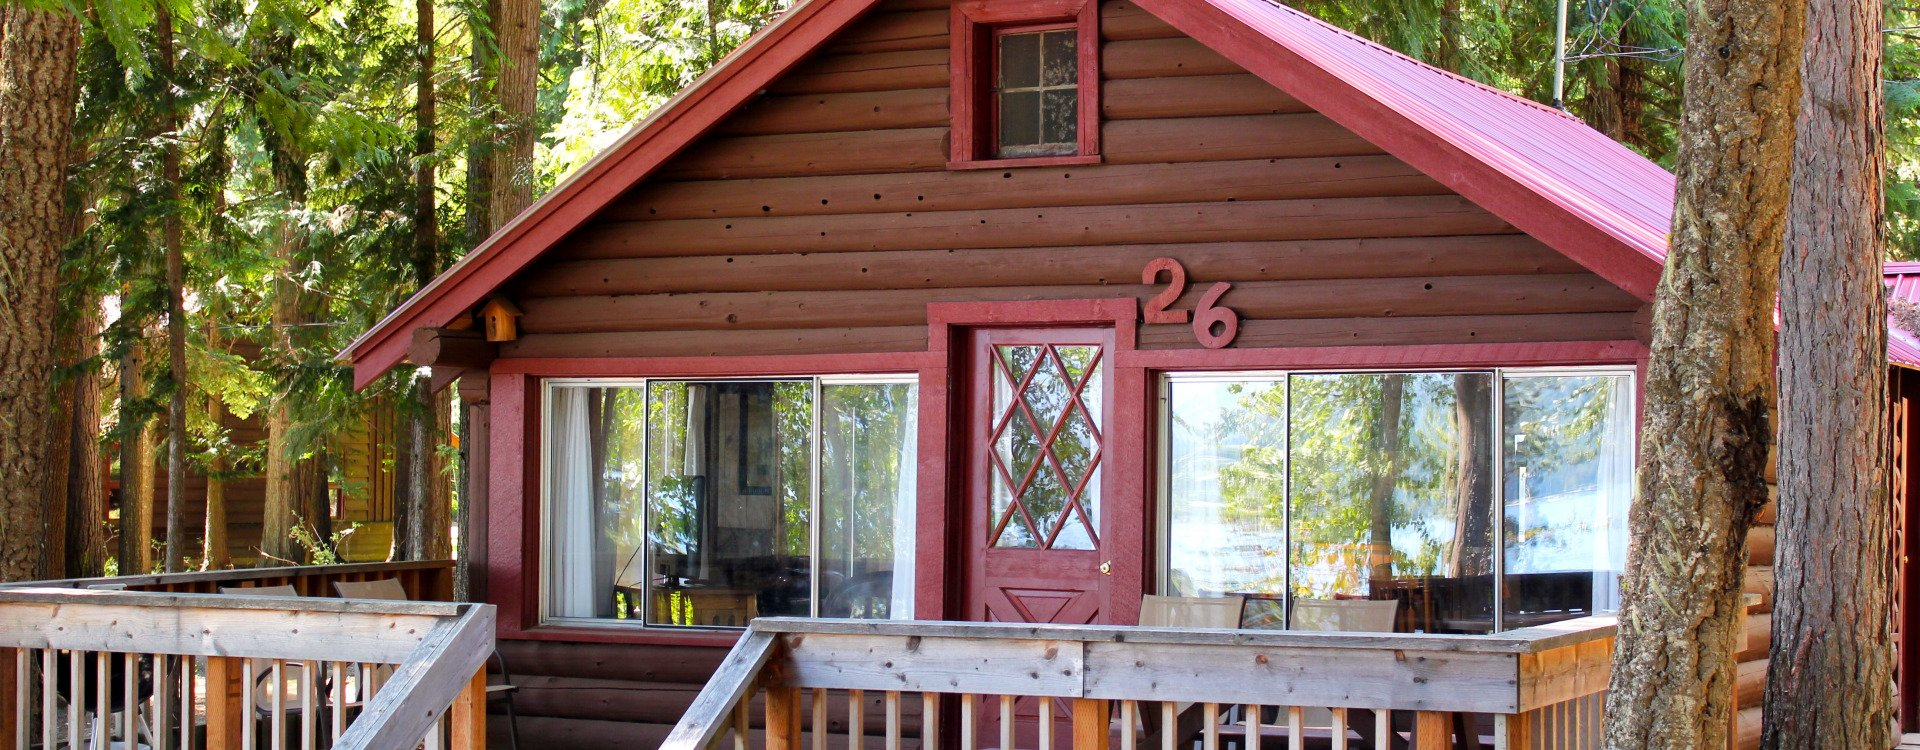 We have a variety of cabins at Elkins Resort to fit your needs